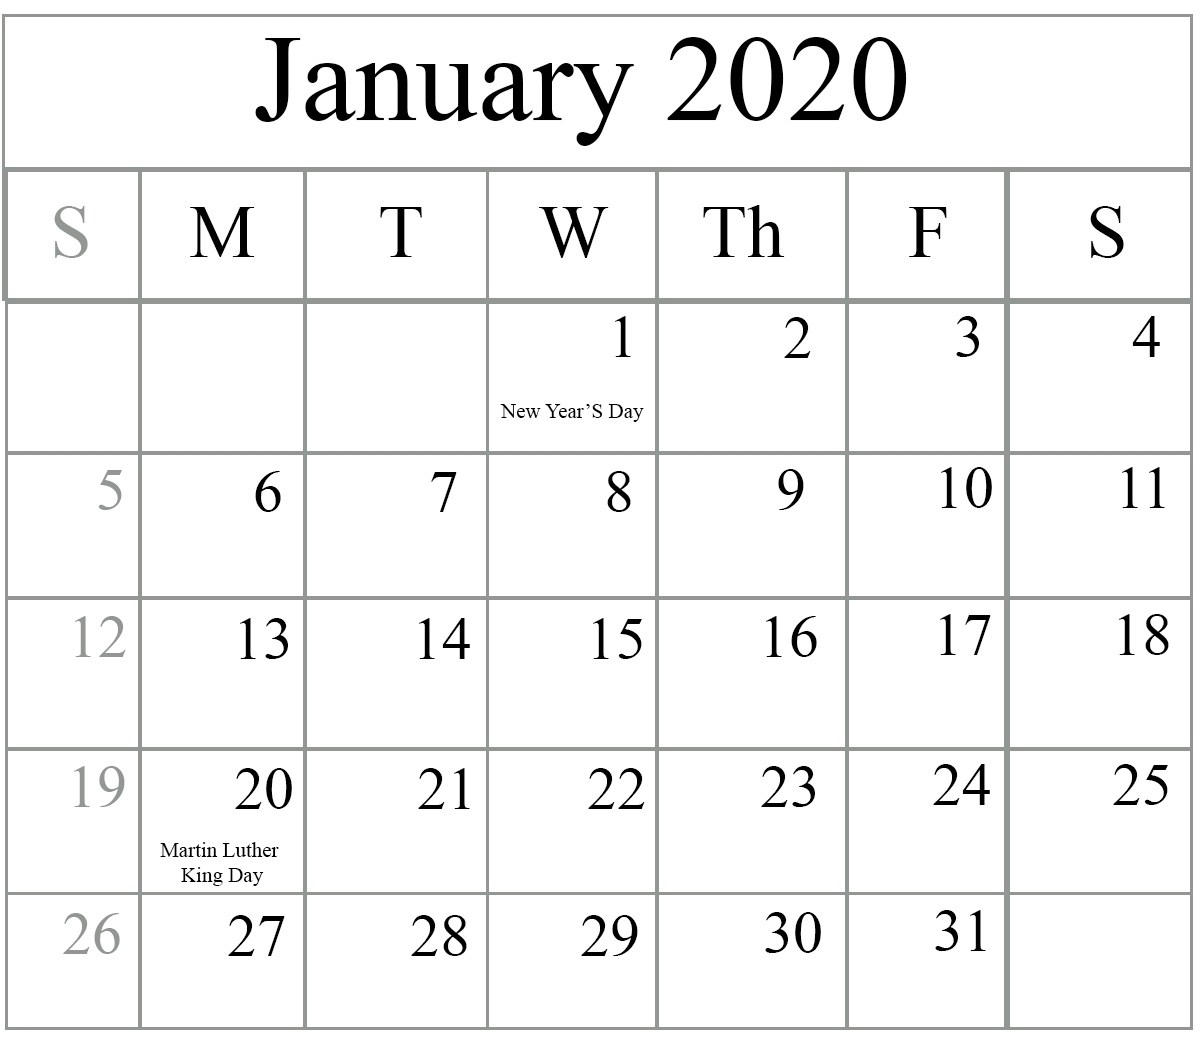 Free January 2020 Printable Calendar In Pdf, Excel & Word-Free Printable January 2020 Calendar